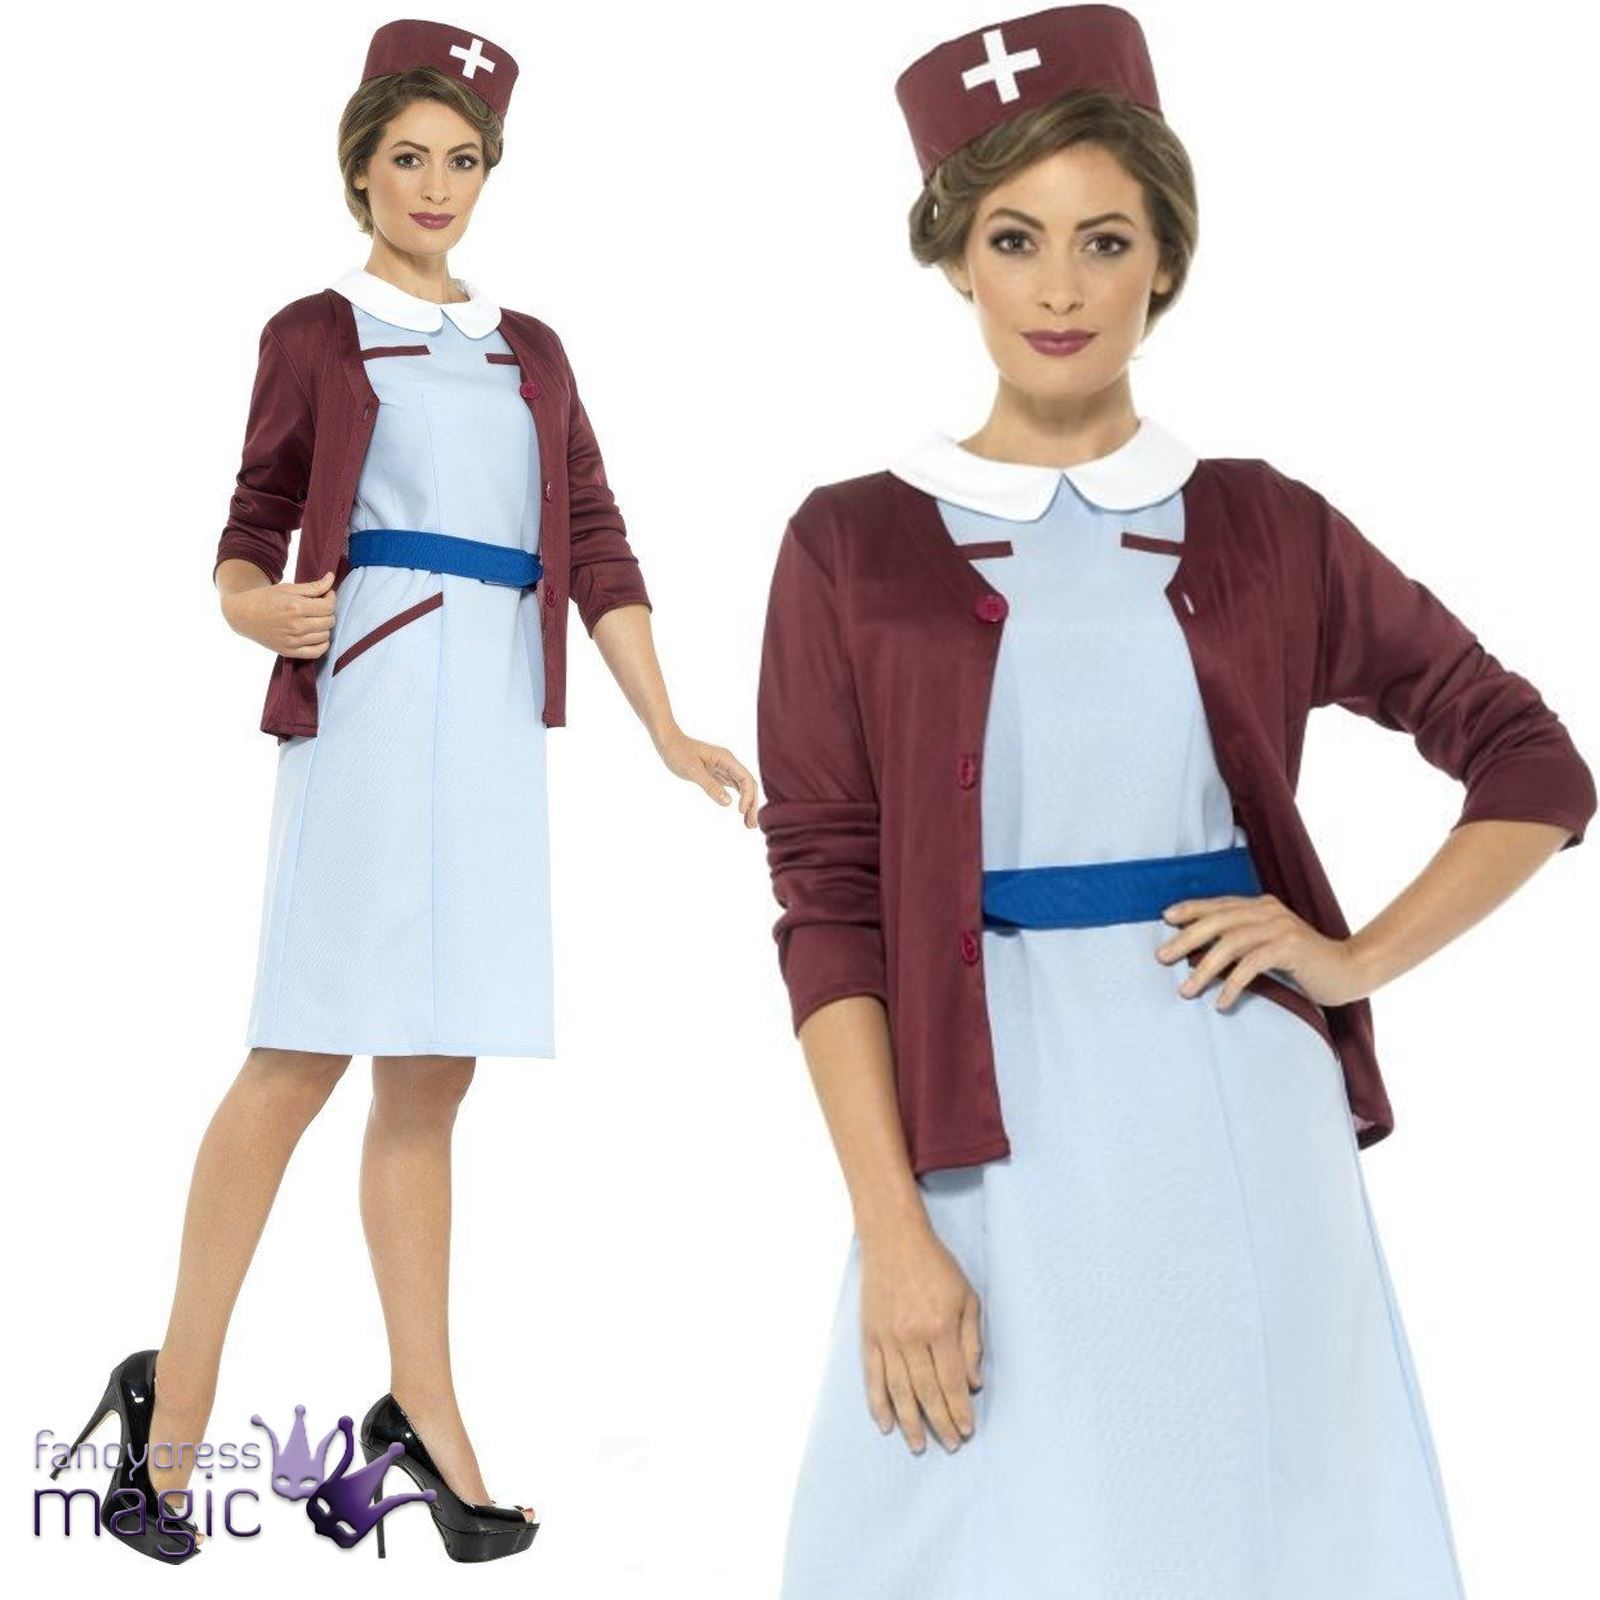 Ladies Vintage 1940s 40s WW2 Nurse Fancy Dress Wartime Costume u0026 Cardigan Outfit  sc 1 st  eBay & Ladies Vintage 1940s 40s WW2 Nurse Fancy Dress Wartime Costume ...